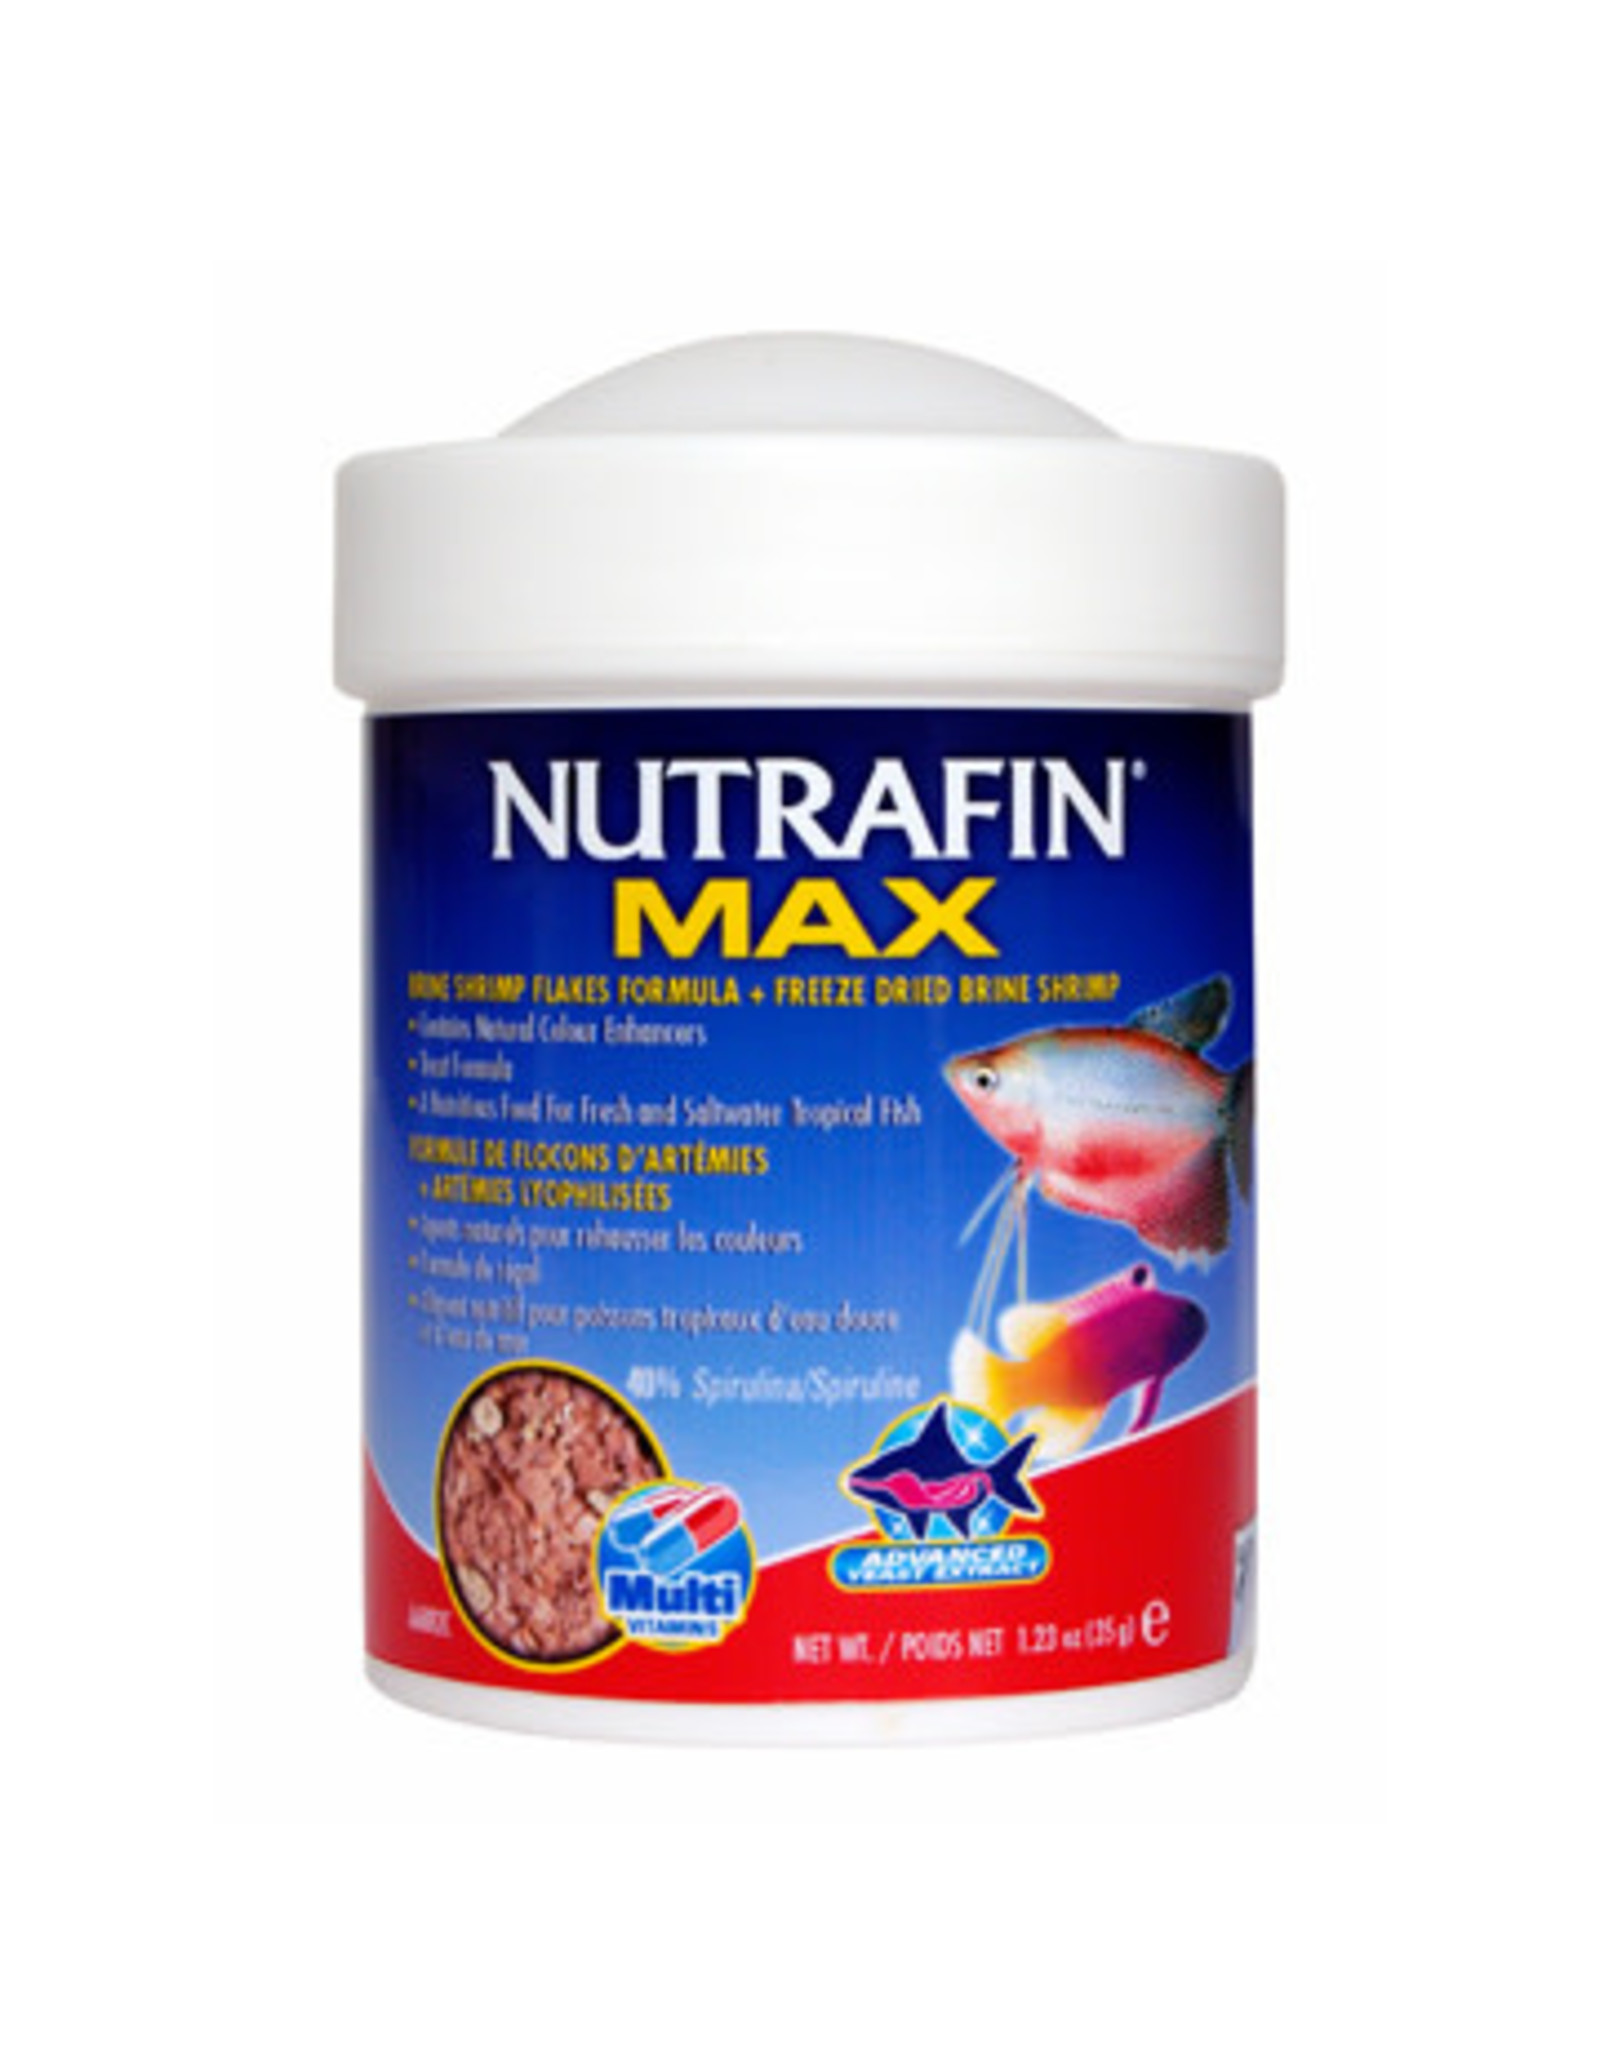 Nutrafin Nutrafin Max Brine Shrimp Flakes + Freeze Dried Brine Shrimp 35 g (1.23 oz)